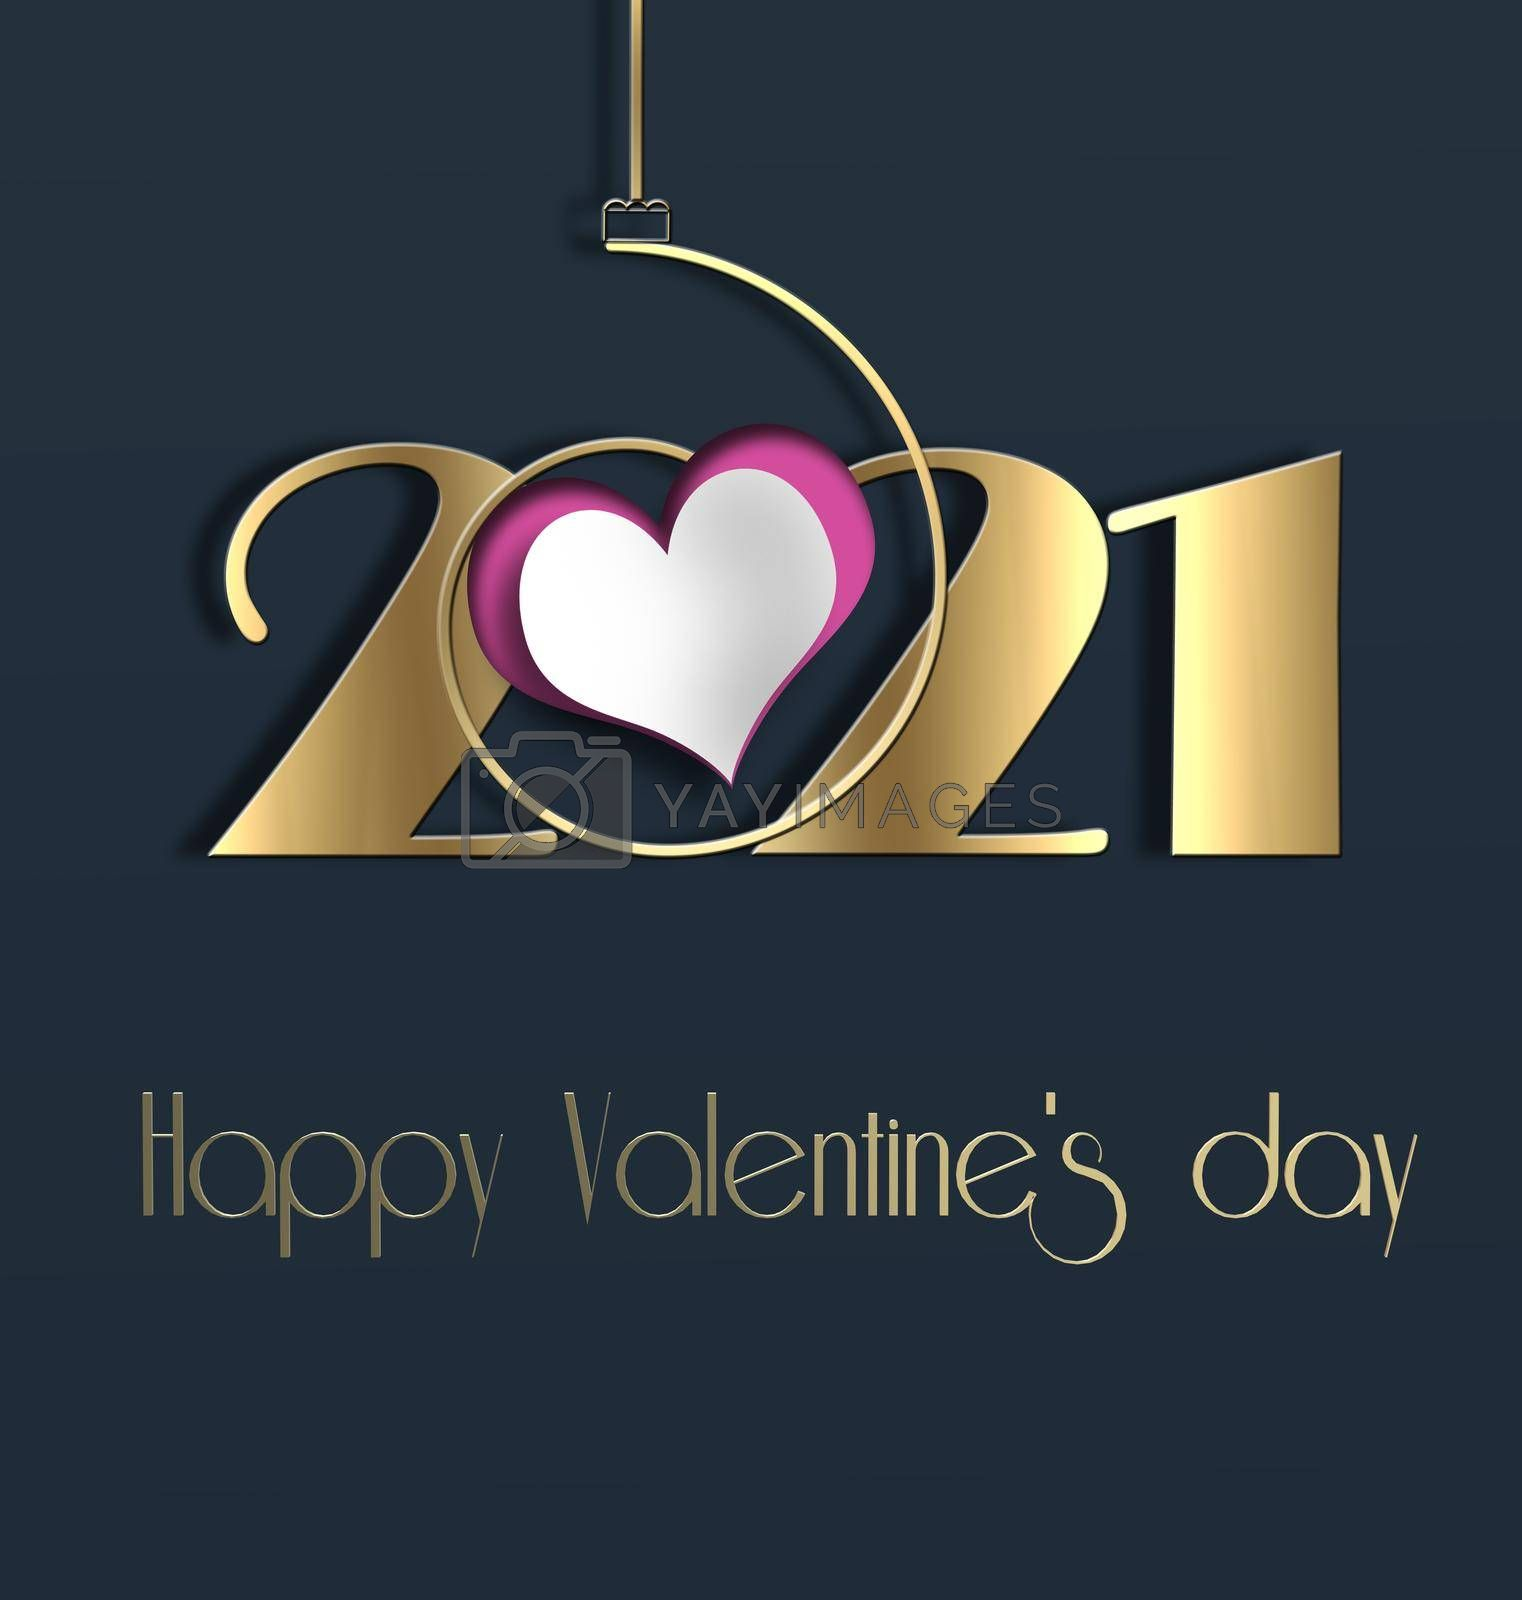 Valentines day 2021 heart realistic, golf digit 2021. Text Happy Valentines day. 3Dillustration. 2021 year of love concept